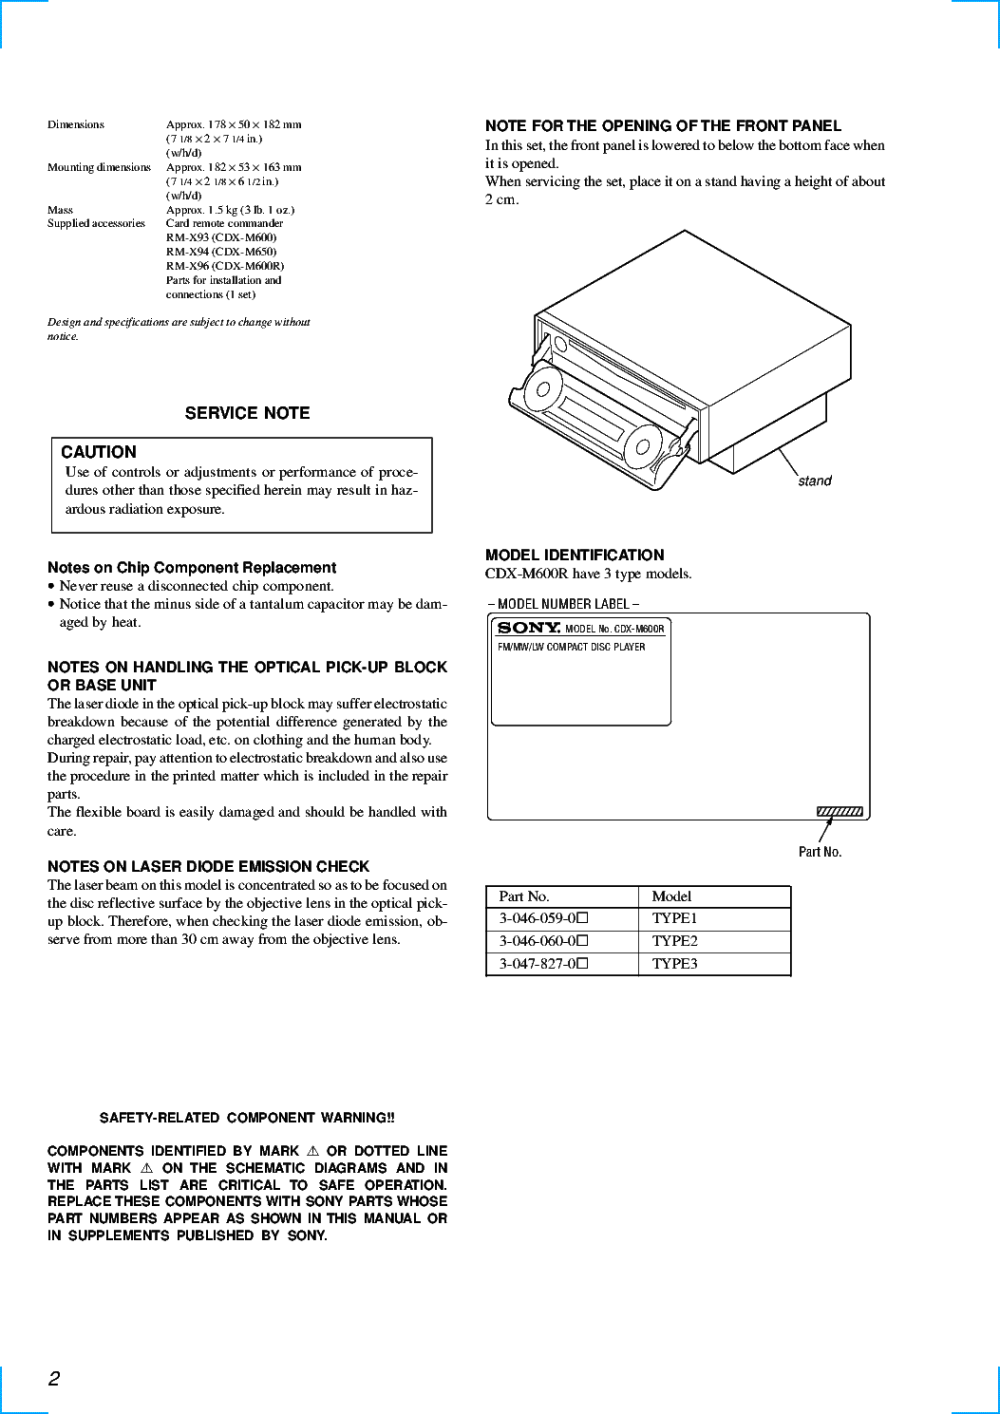 medium resolution of sony cdx m600 cdx m600r cdx m650 service manual download schematics sony wiring harness colors sony cdx m600 wiring diagram